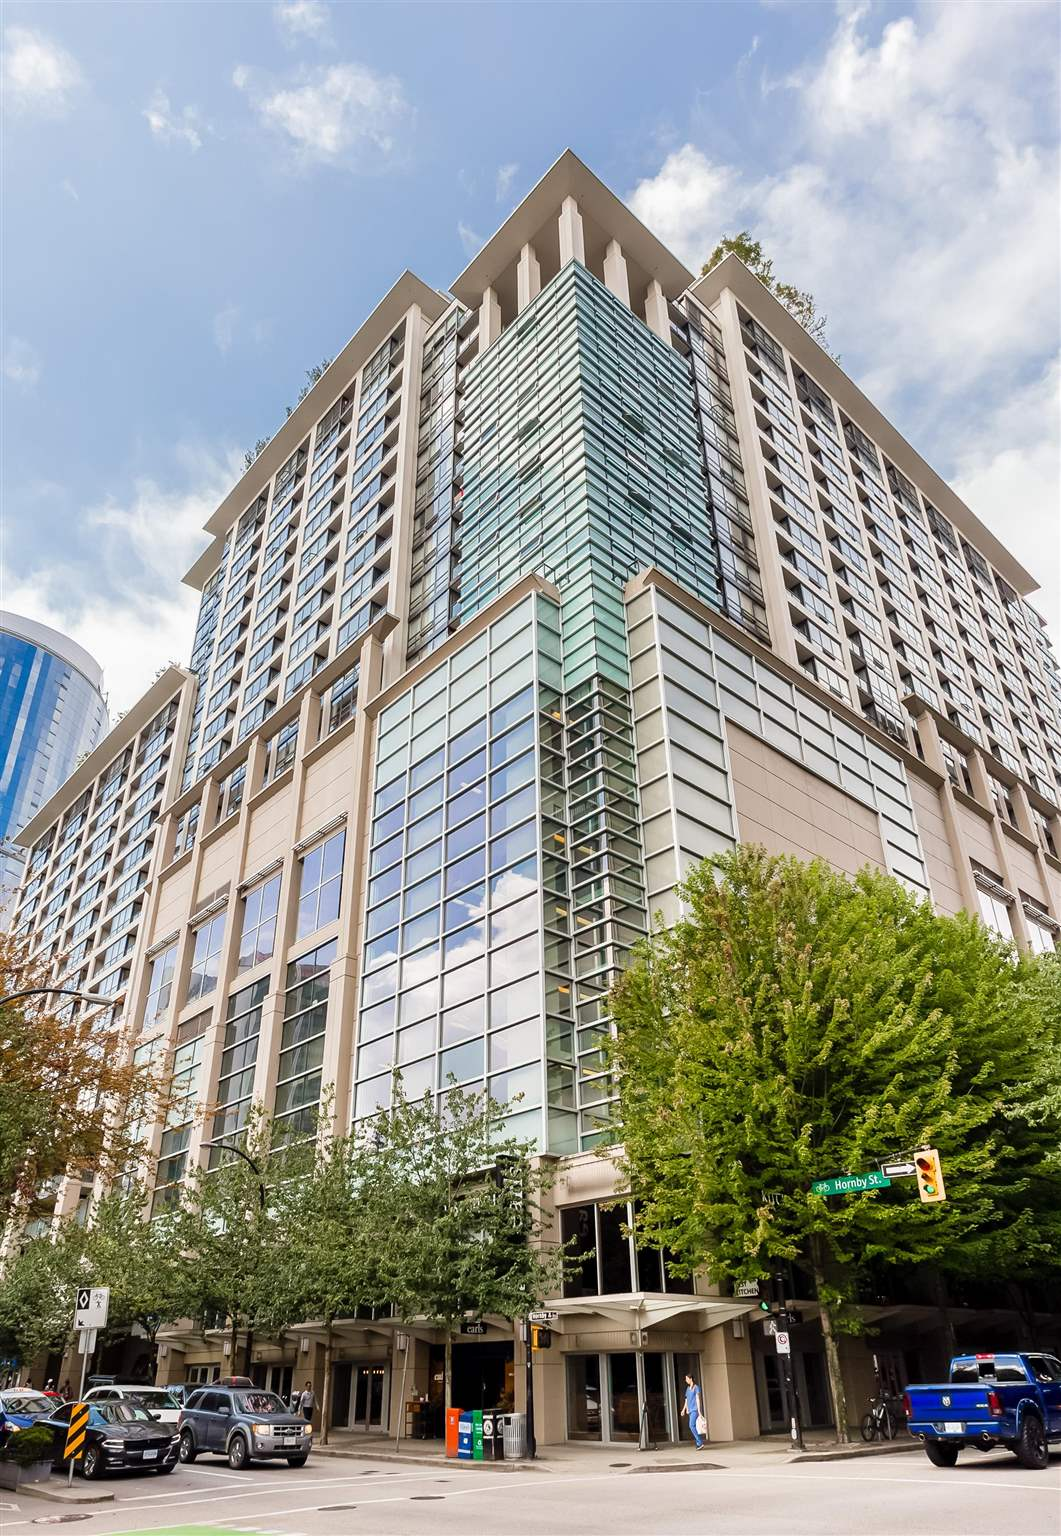 1333 938 SMITHE STREET - Downtown VW Apartment/Condo for sale, 1 Bedroom (R2601235) - #1